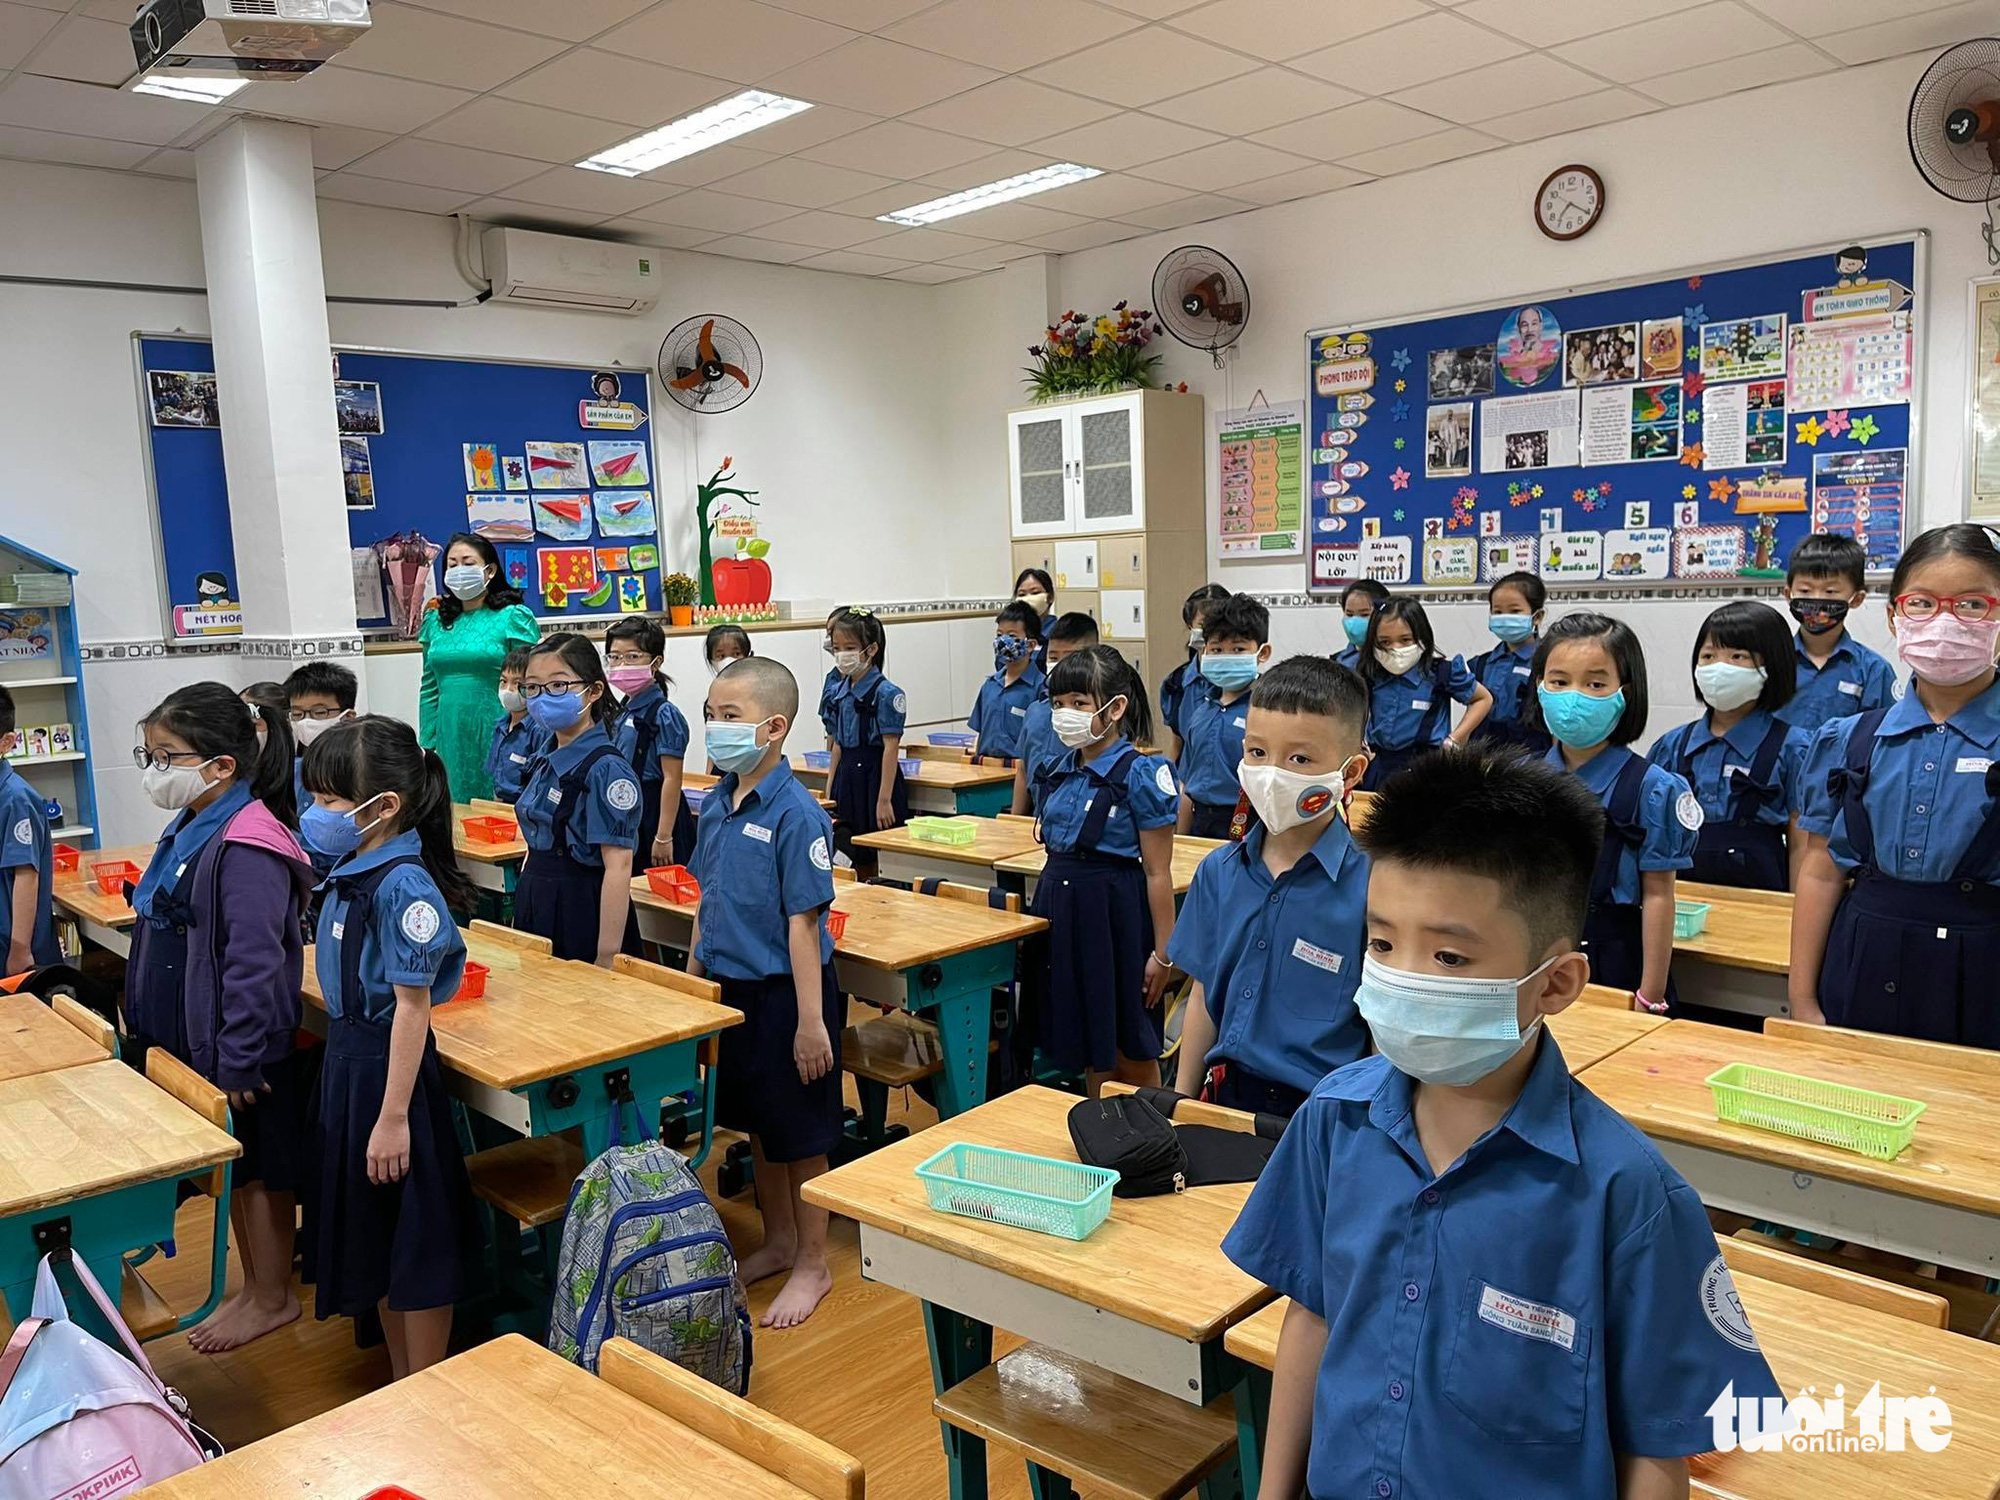 Students attend the flag salute ceremony inside a classroom at Hoa Binh Elementary School in District 1, Ho Chi Minh City, March 1, 2021. Photo: Thao Thuong / Tuoi Tre